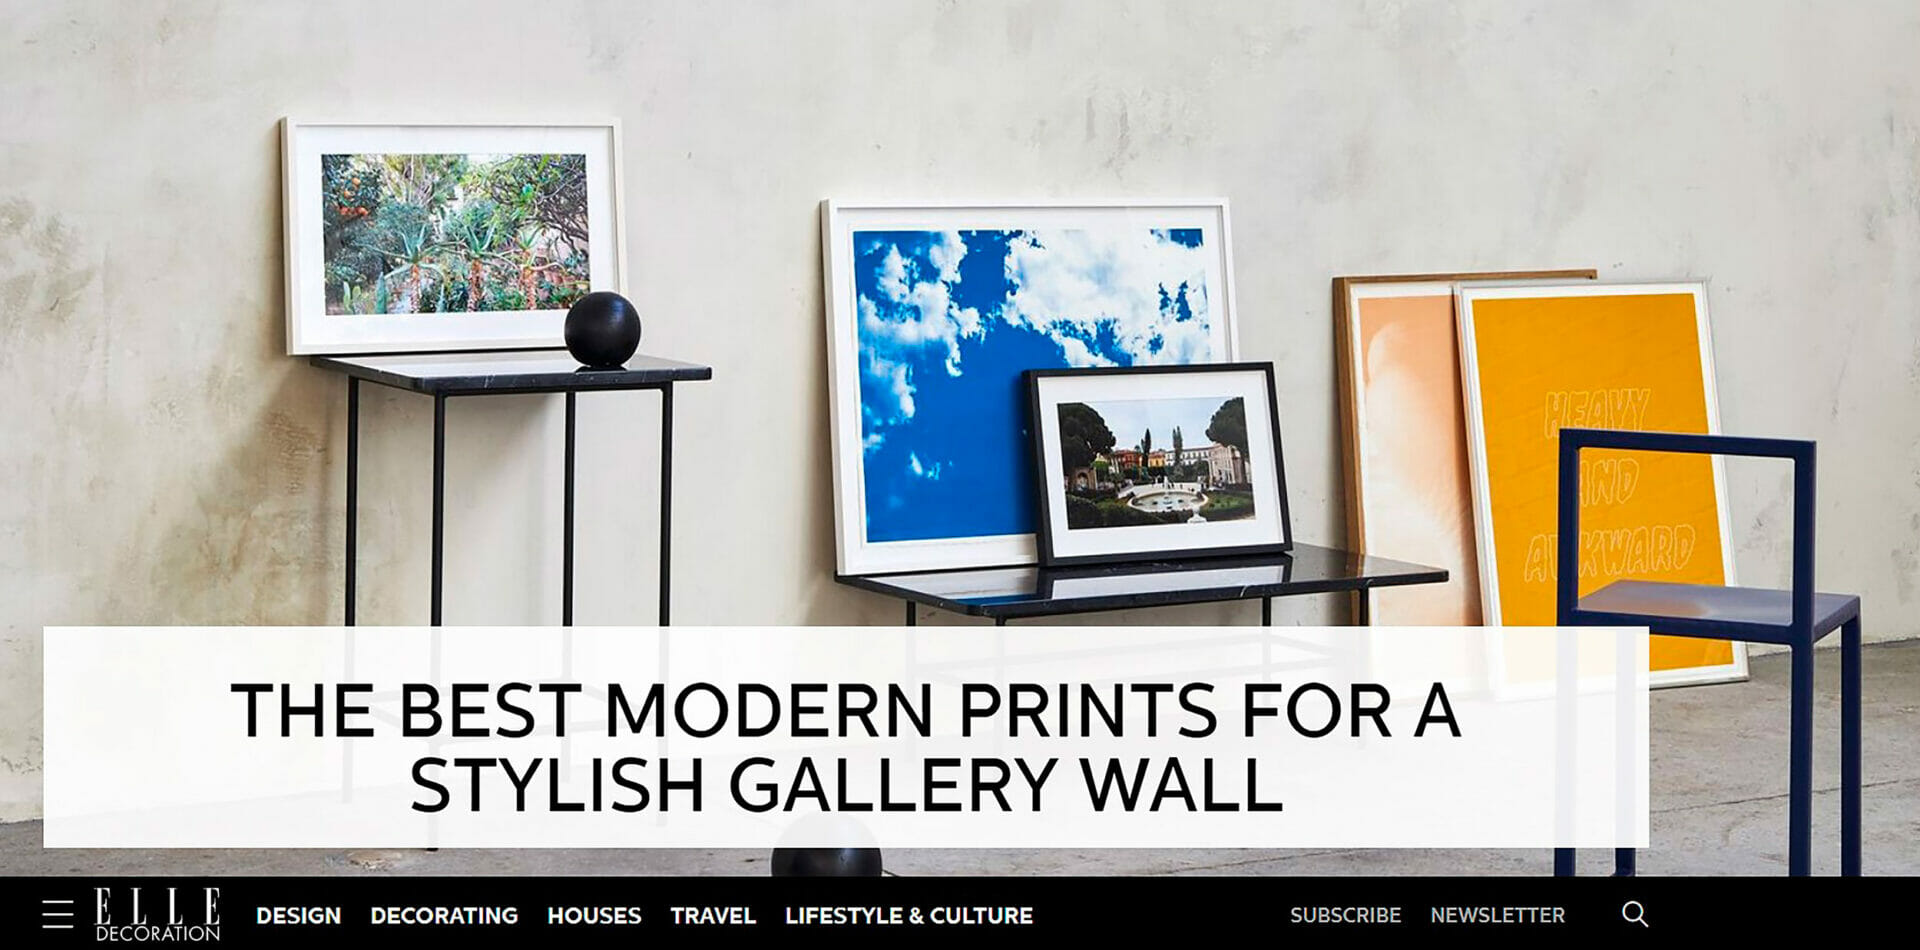 Elle Decoration feature - Artists & Objects on the homepage with prints included in the gallery wall edit